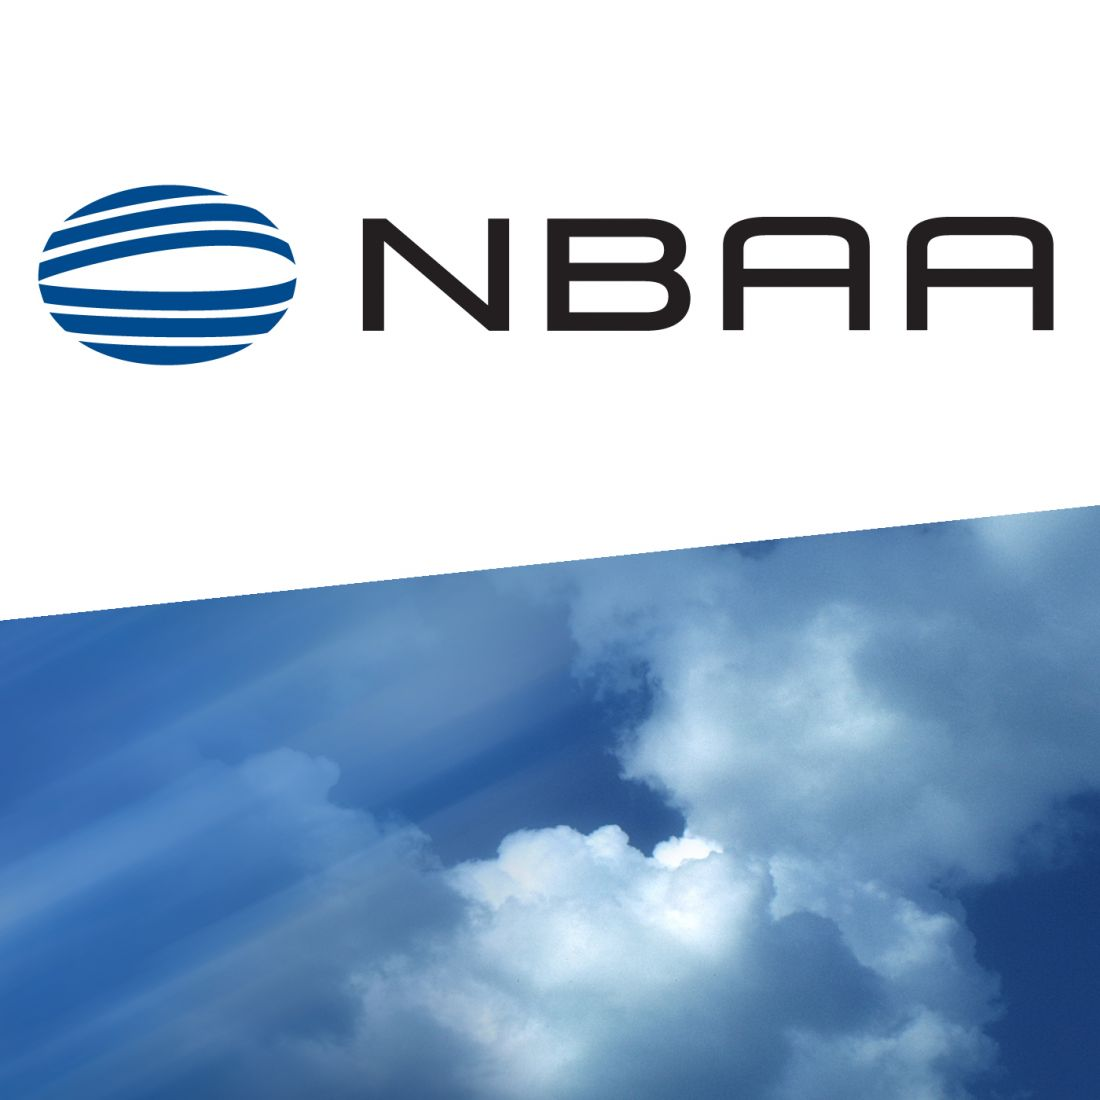 The Martyn Fiddler team will be in Las Vegas to attend the NBAA Tax, Regulatory and Risk Management Conference